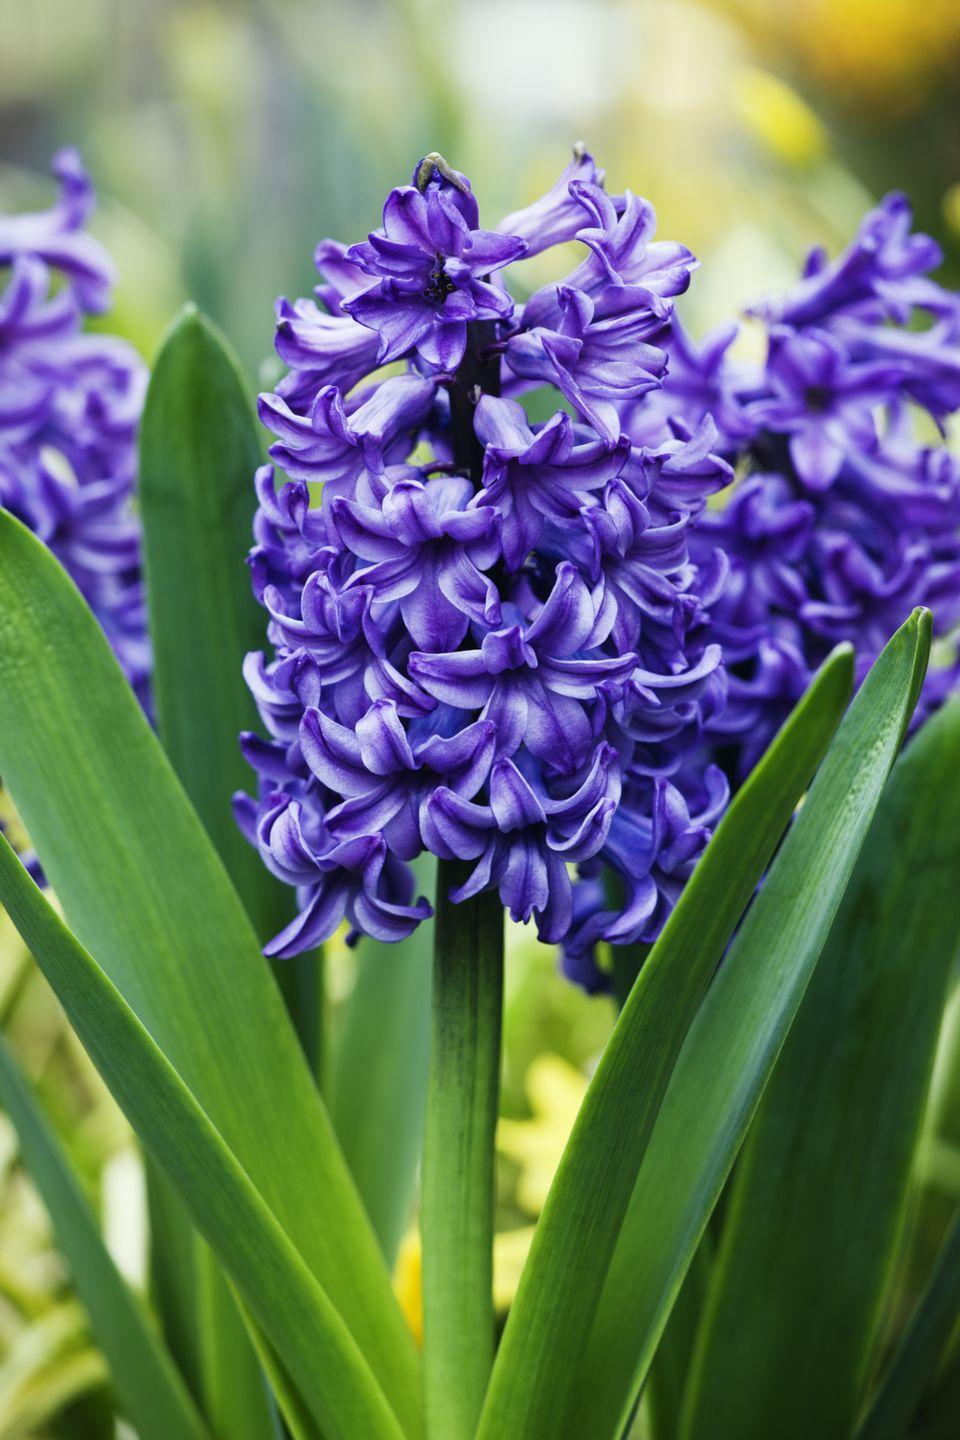 """<p>The purple version of this bloom means """"please forgive me,"""" which originates from the myth of Apollo and Hyacinthus (the former accidentally killed the latter). The perfect """"I'm sorry"""" flower, don't ya think?</p>"""